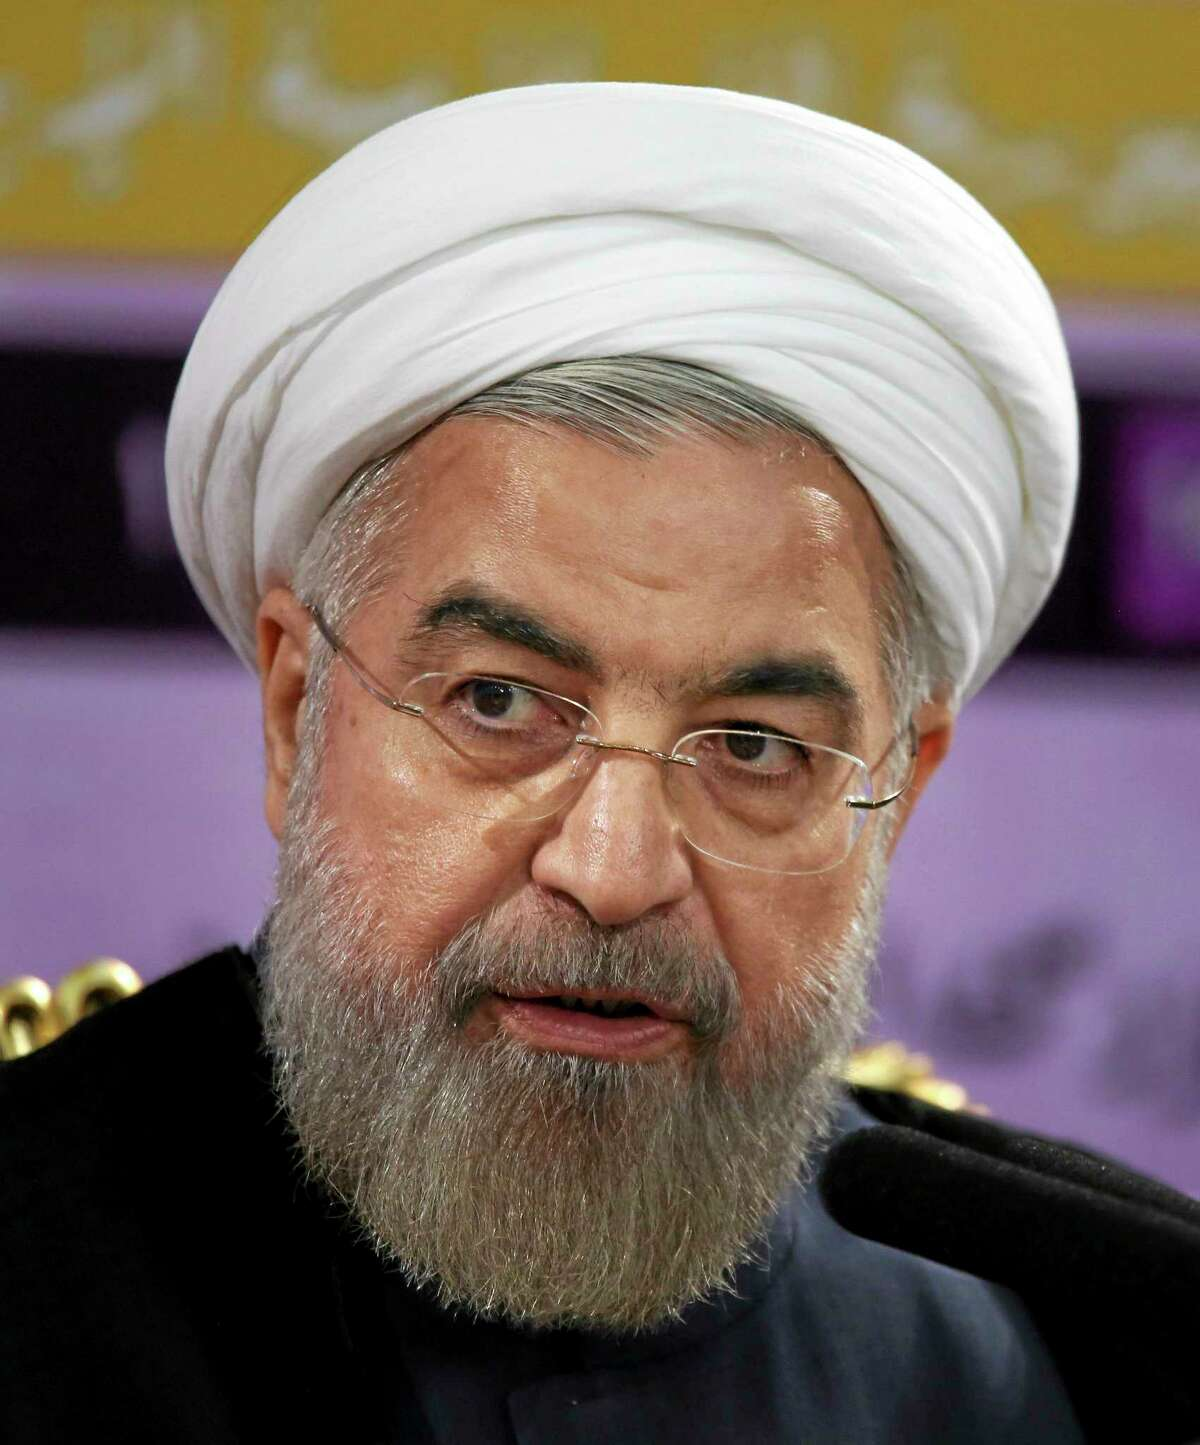 Iranian President Hassan Rouhani speaks during a press conference in Tehran, Iran, Saturday. Rouhani says the international sanctions regime has crumbled and will not be rebuilt even if Iran and world powers fail to reach a final nuclear deal by a July 20 deadline. Iran and the five permanent members of the U.N. Security Council plus Germany reached an interim deal in November that limited Iran's uranium enrichment program in exchange for the easing of some sanctions.